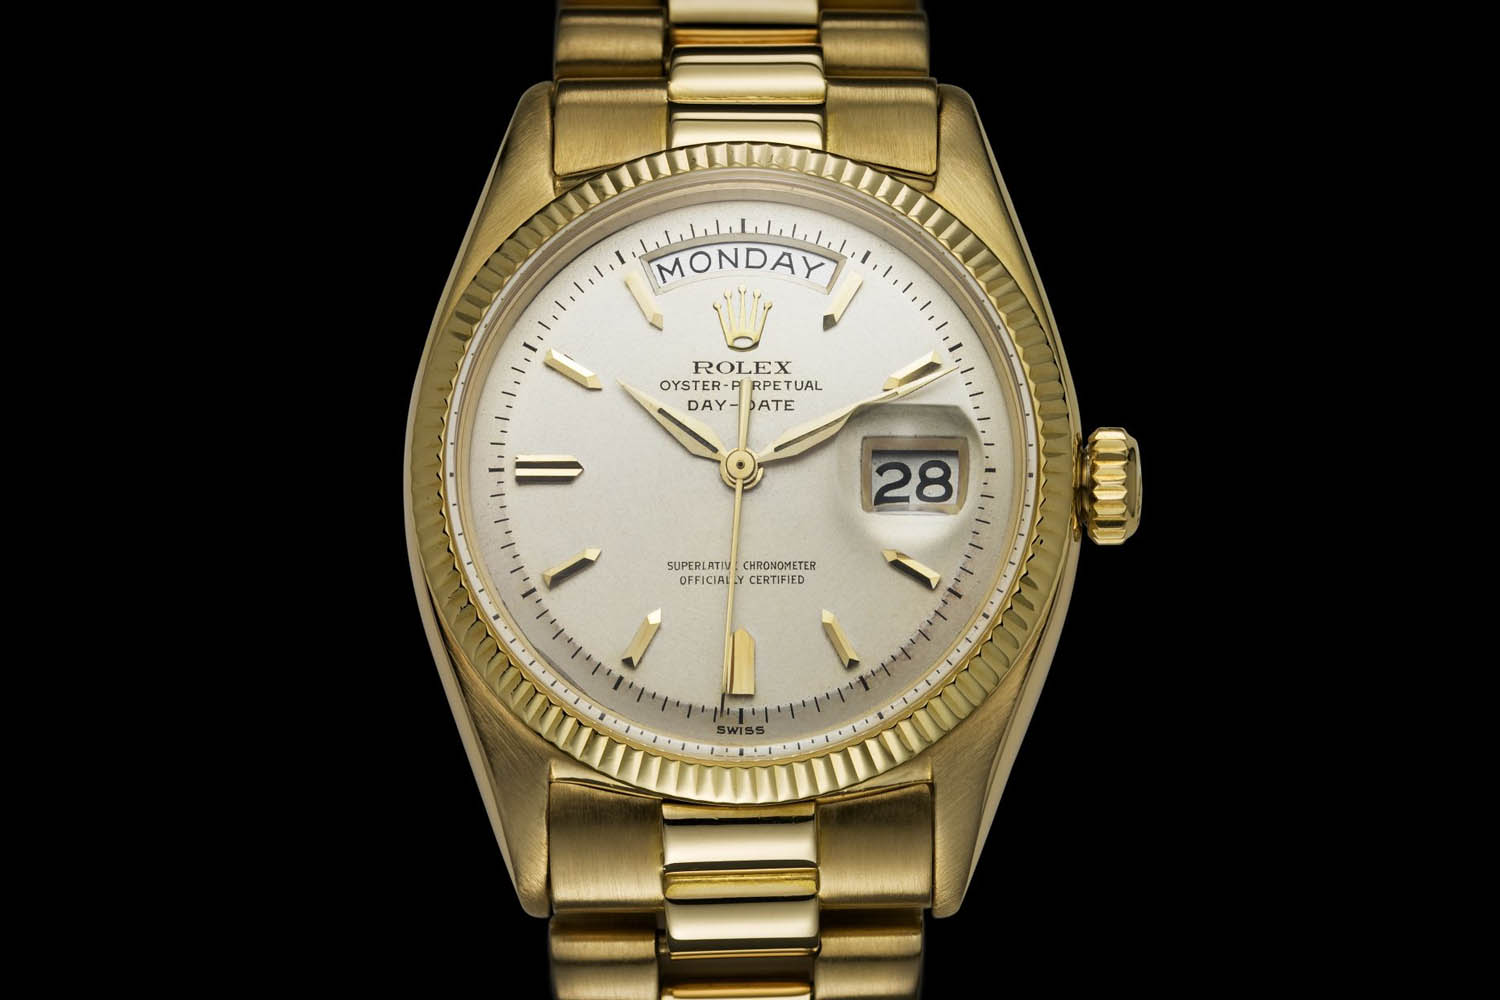 970a8c93177 Rolex Day-Date 60th Anniversary Edition, the President's Watch with ...